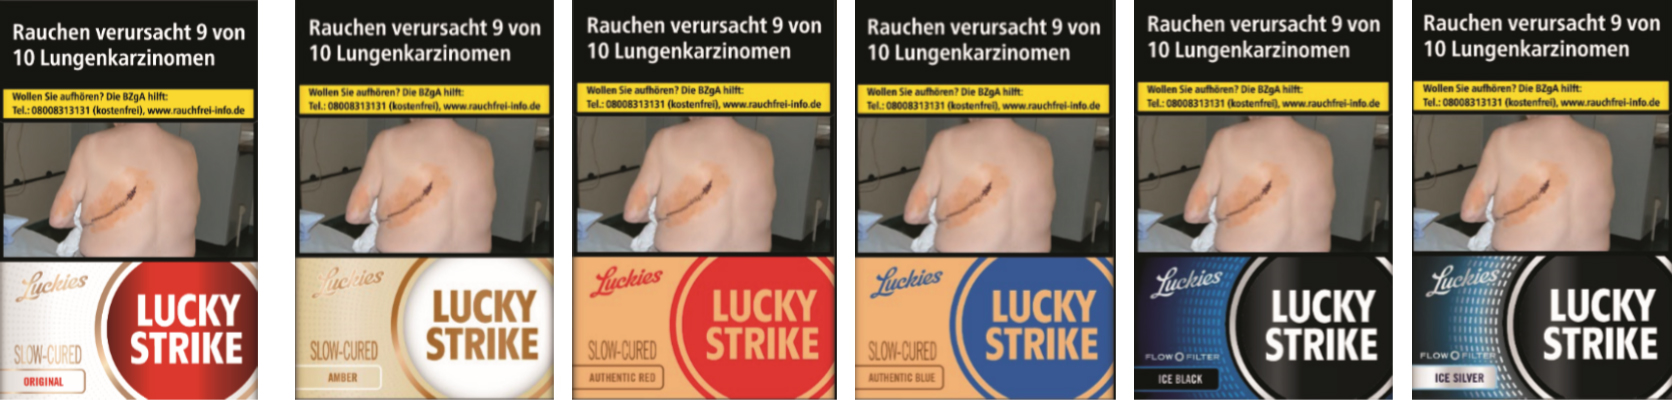 Lucky Strike Luckies im neuen Design